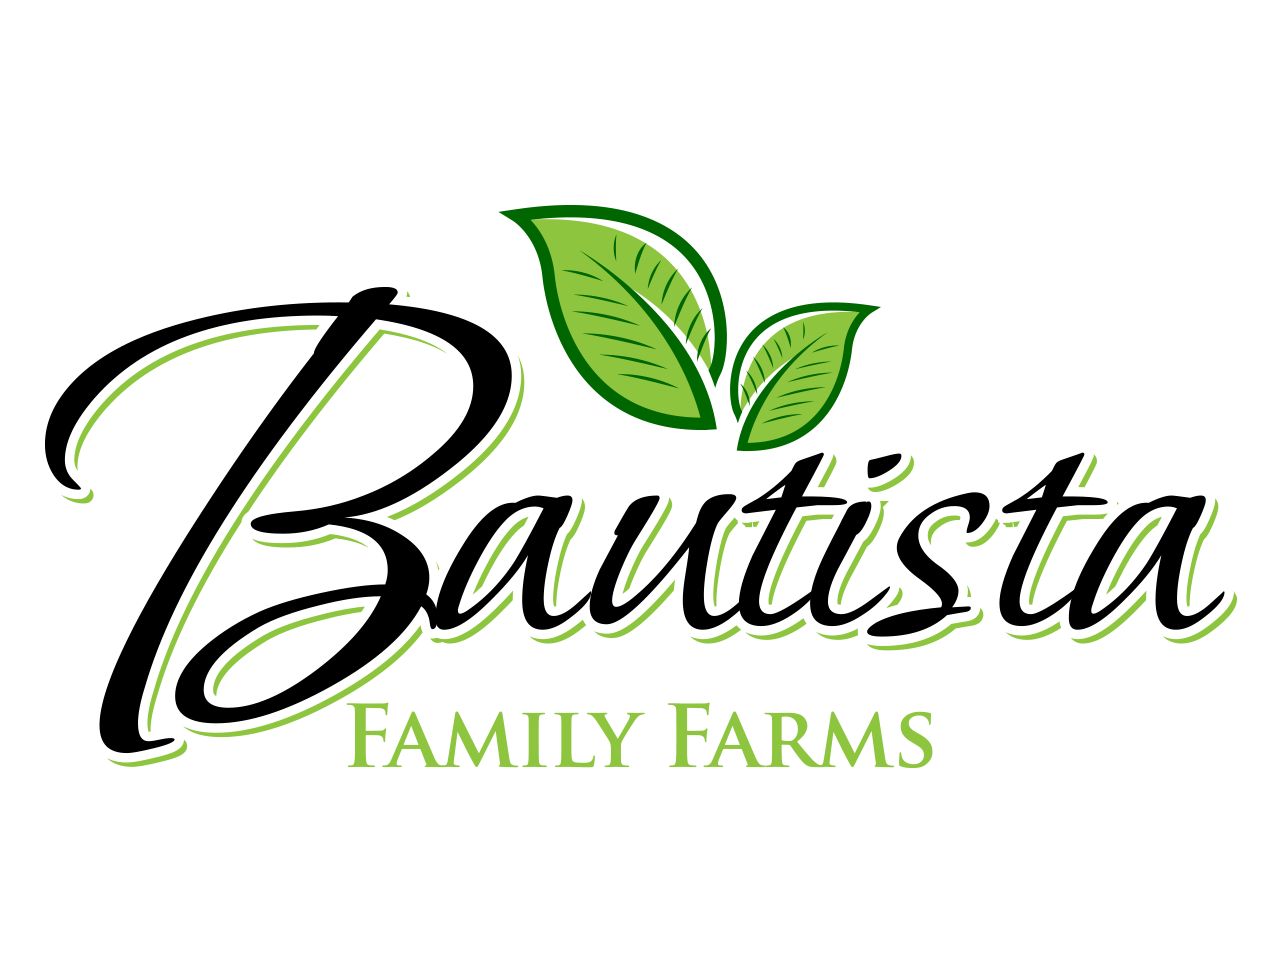 Bautista Family Farms